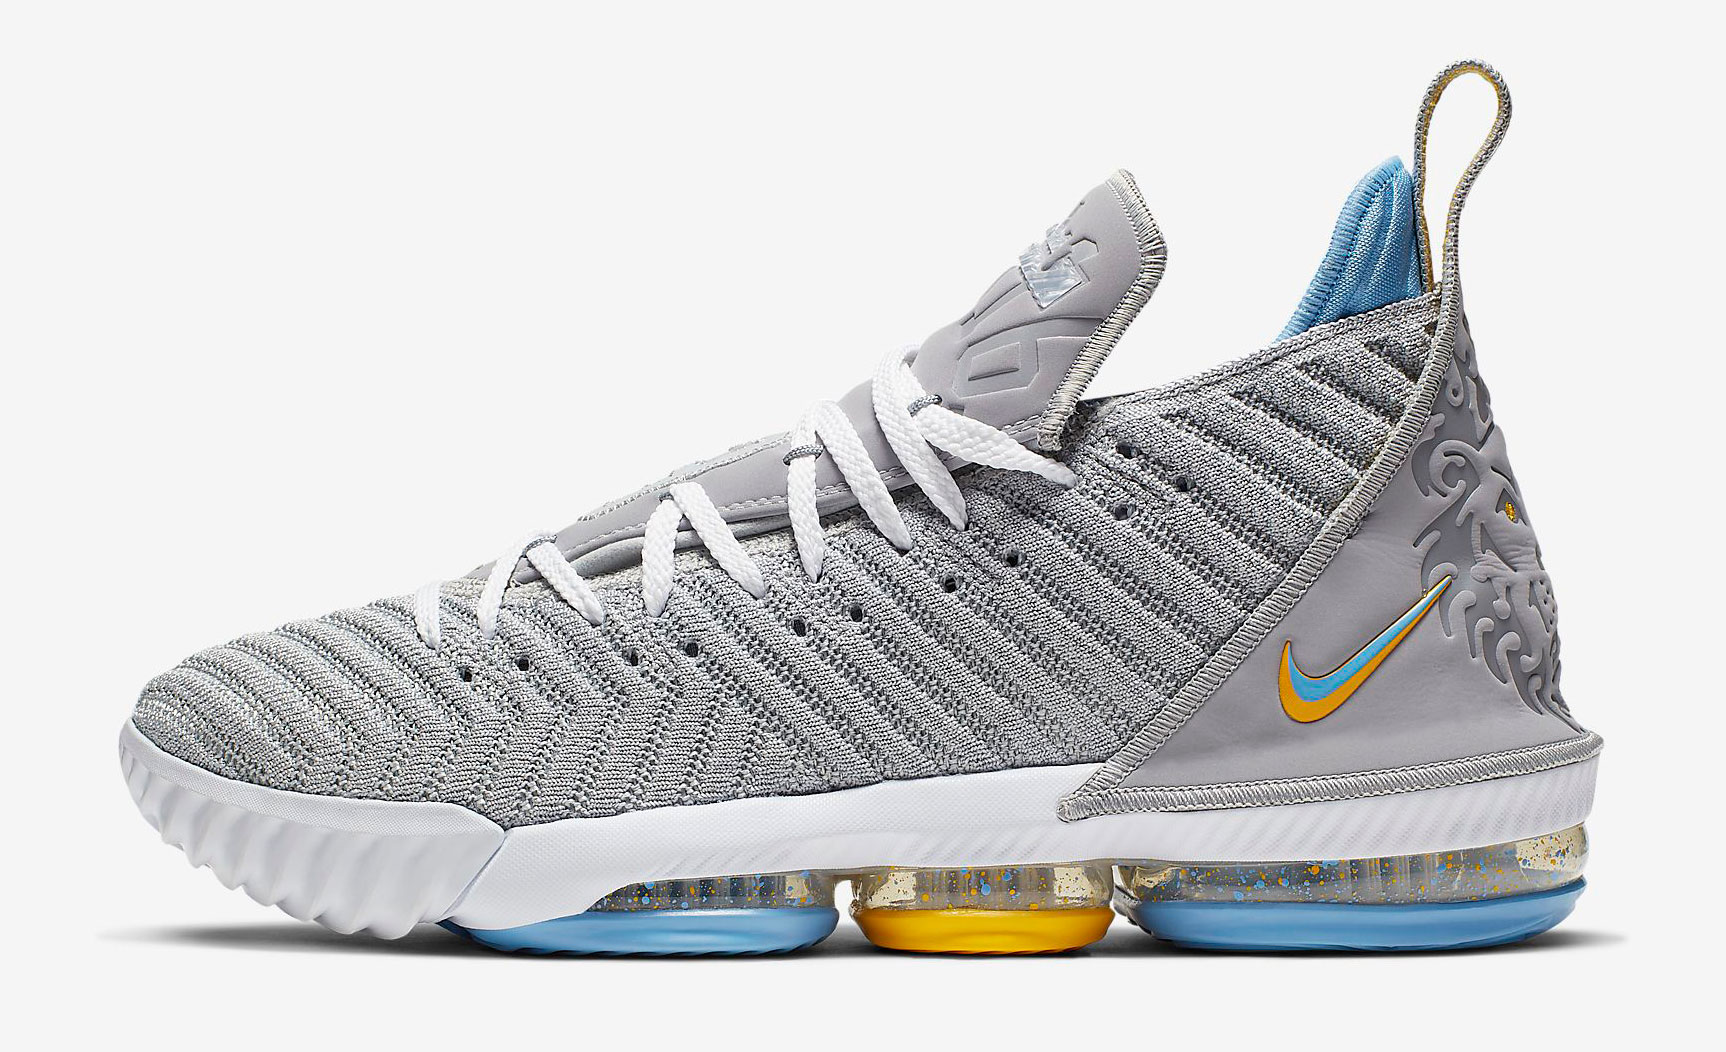 nike-lebron-16-mpls-release-date-where-to-buy